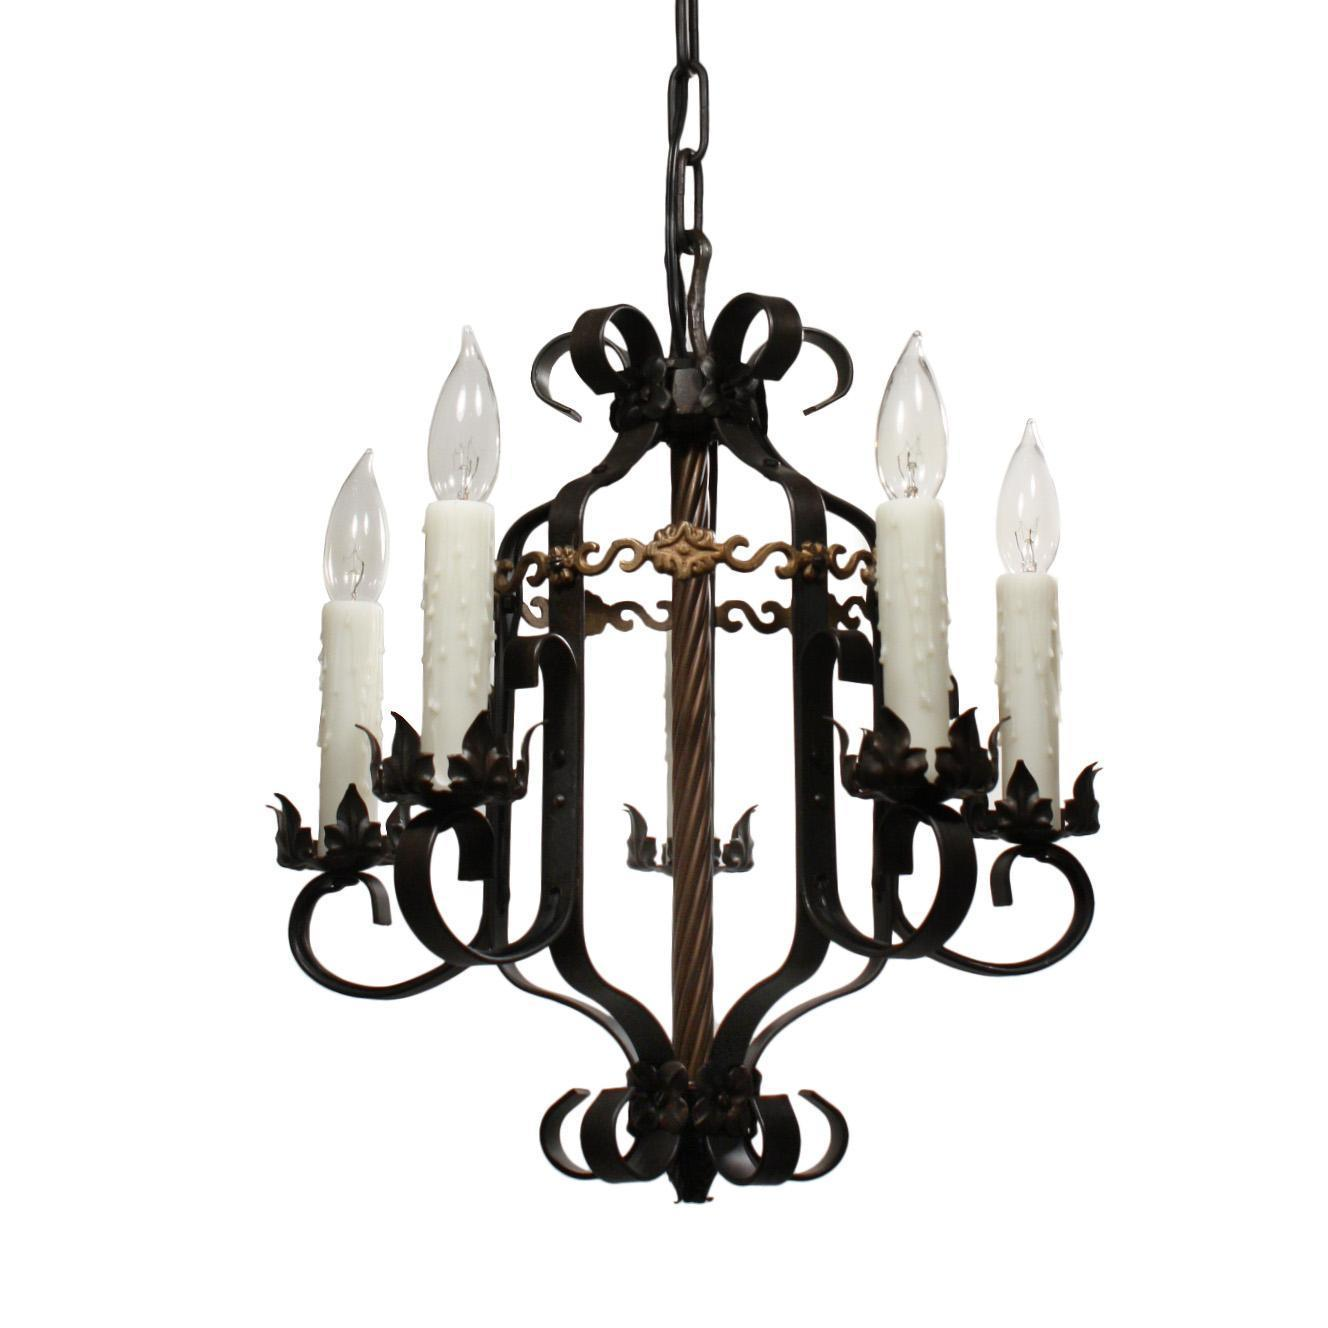 Antique Two-Tone Wrought Iron Chandelier, c.1920